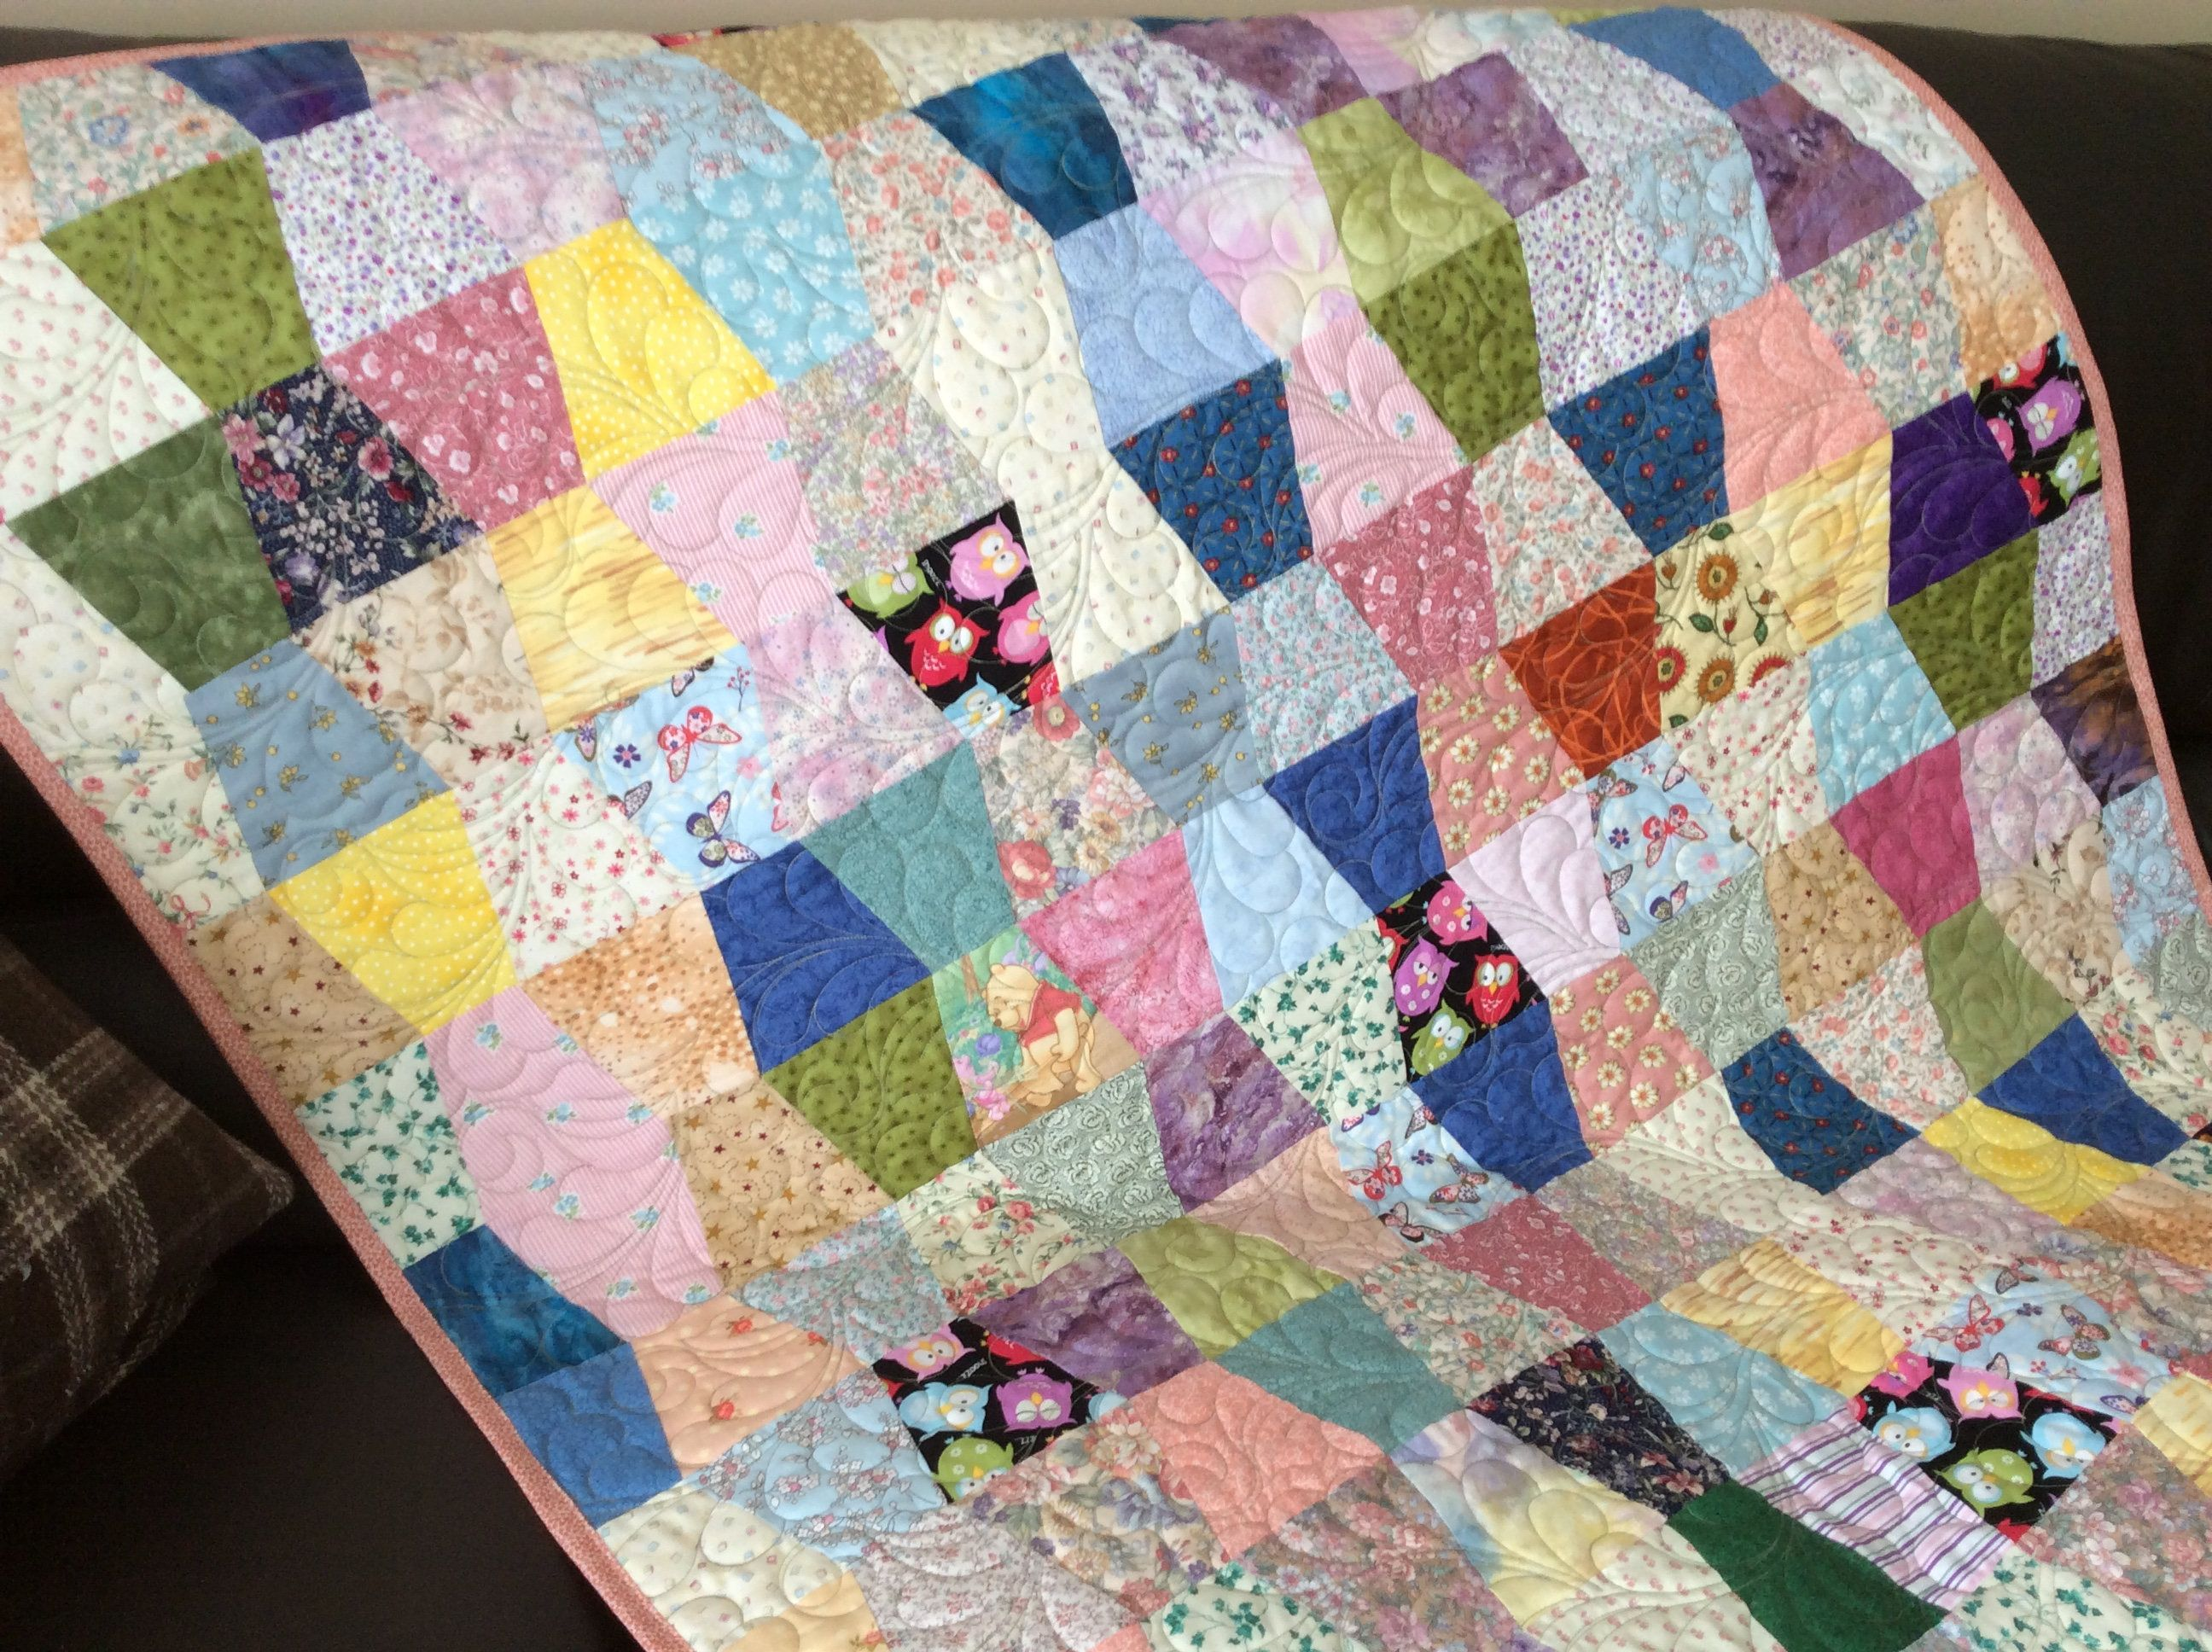 Crib size quilts for sale - Tumbler Block Lap Quilt In Scrappy Multi Colors Quilted With Feathers Crib Size Quilt Or Can Be Used As A Table Cloth Or Picnic Blanket